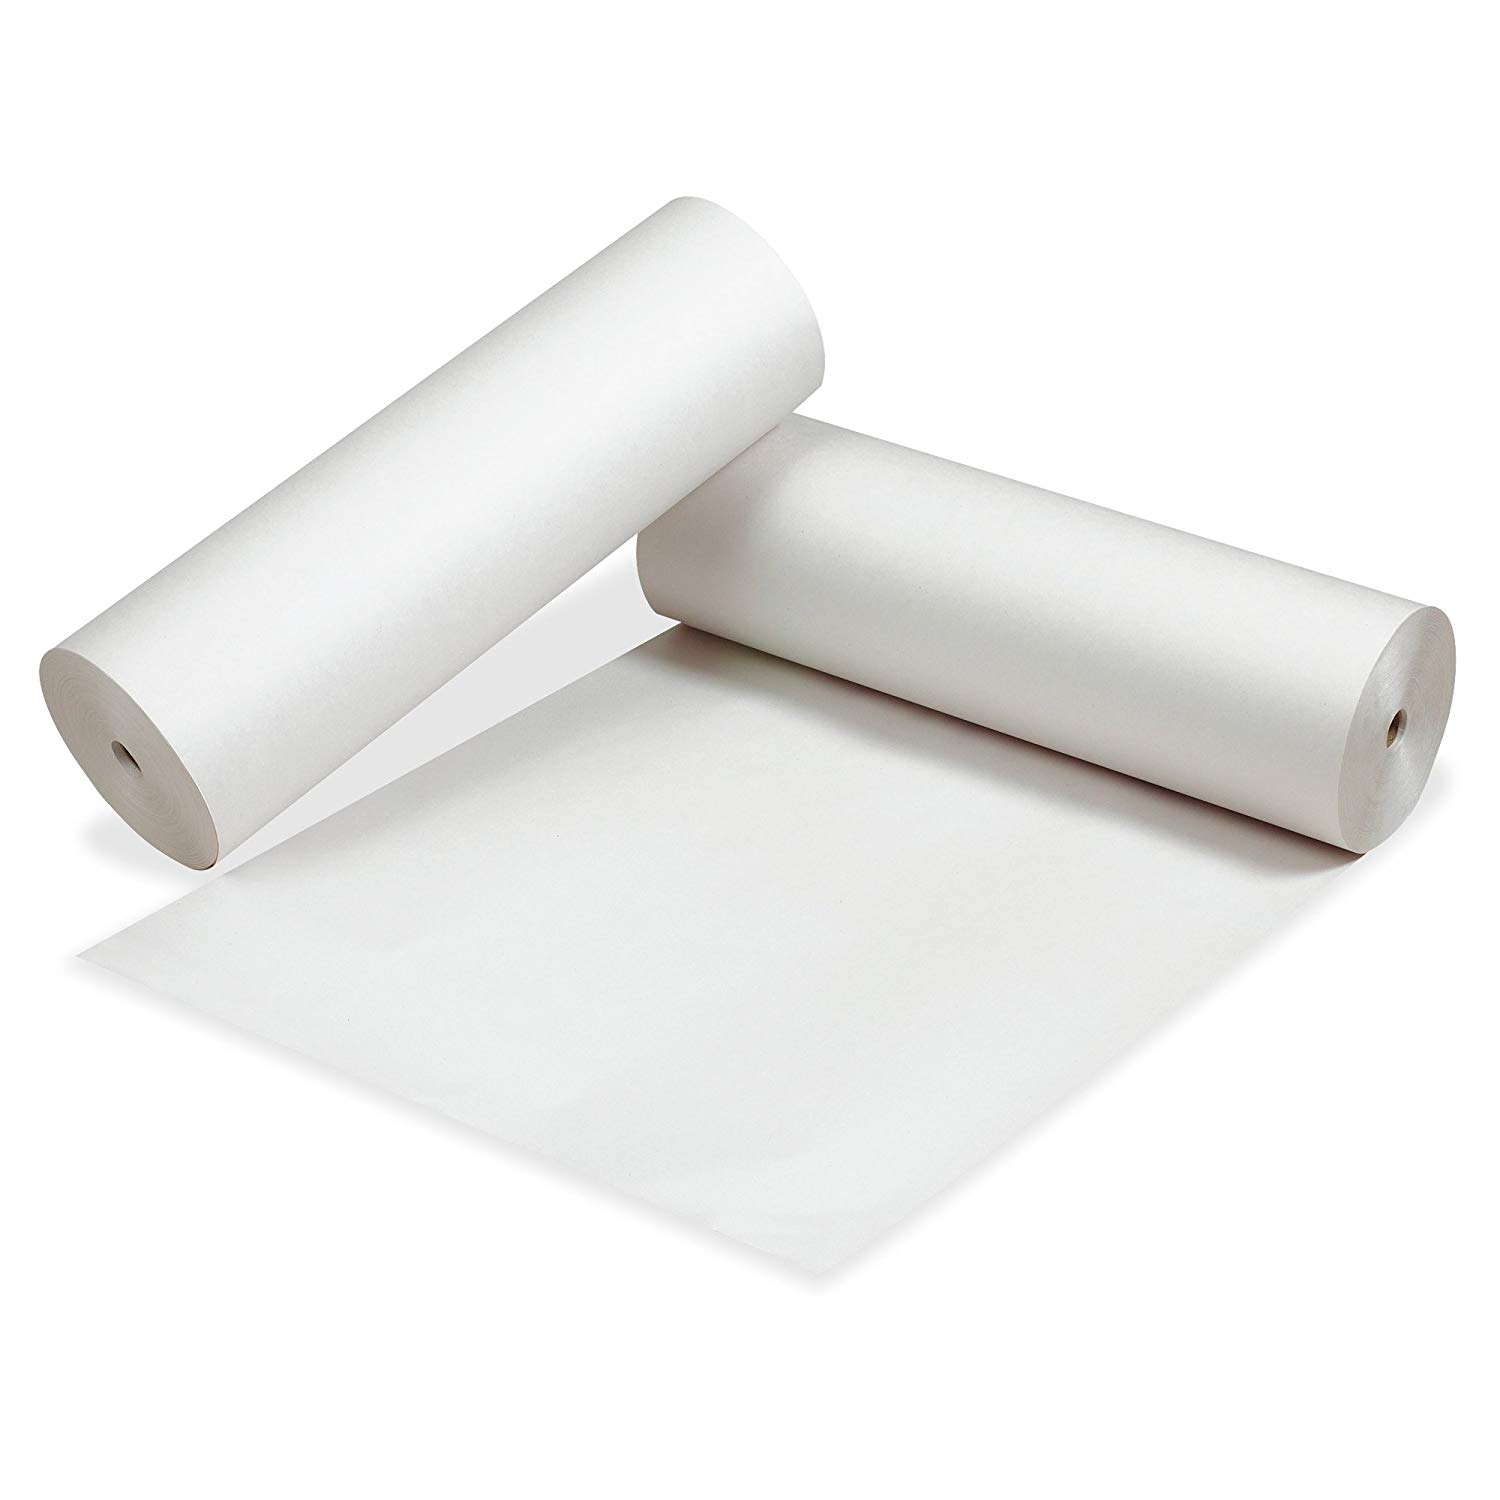 "Packing Paper - 24"" x 1200' (30 lb roll)"